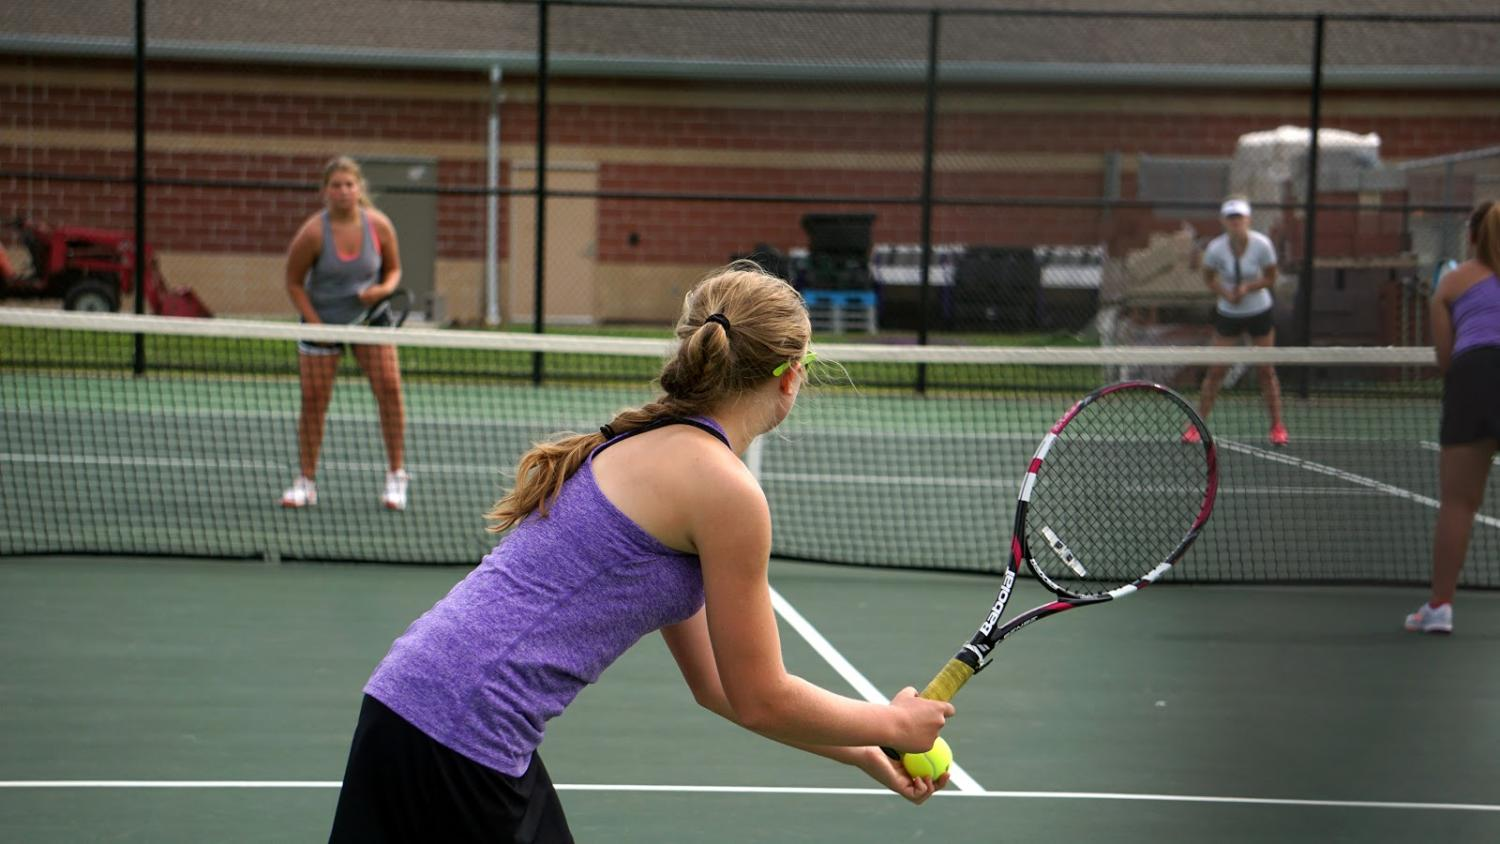 During the first tennis match of the season, KayLee Mitchell, 12, sets up for a serve. The Lady Broncos defeated Lansing in both varsity and Jr. Varsity matches. (photo by J. Barnett)